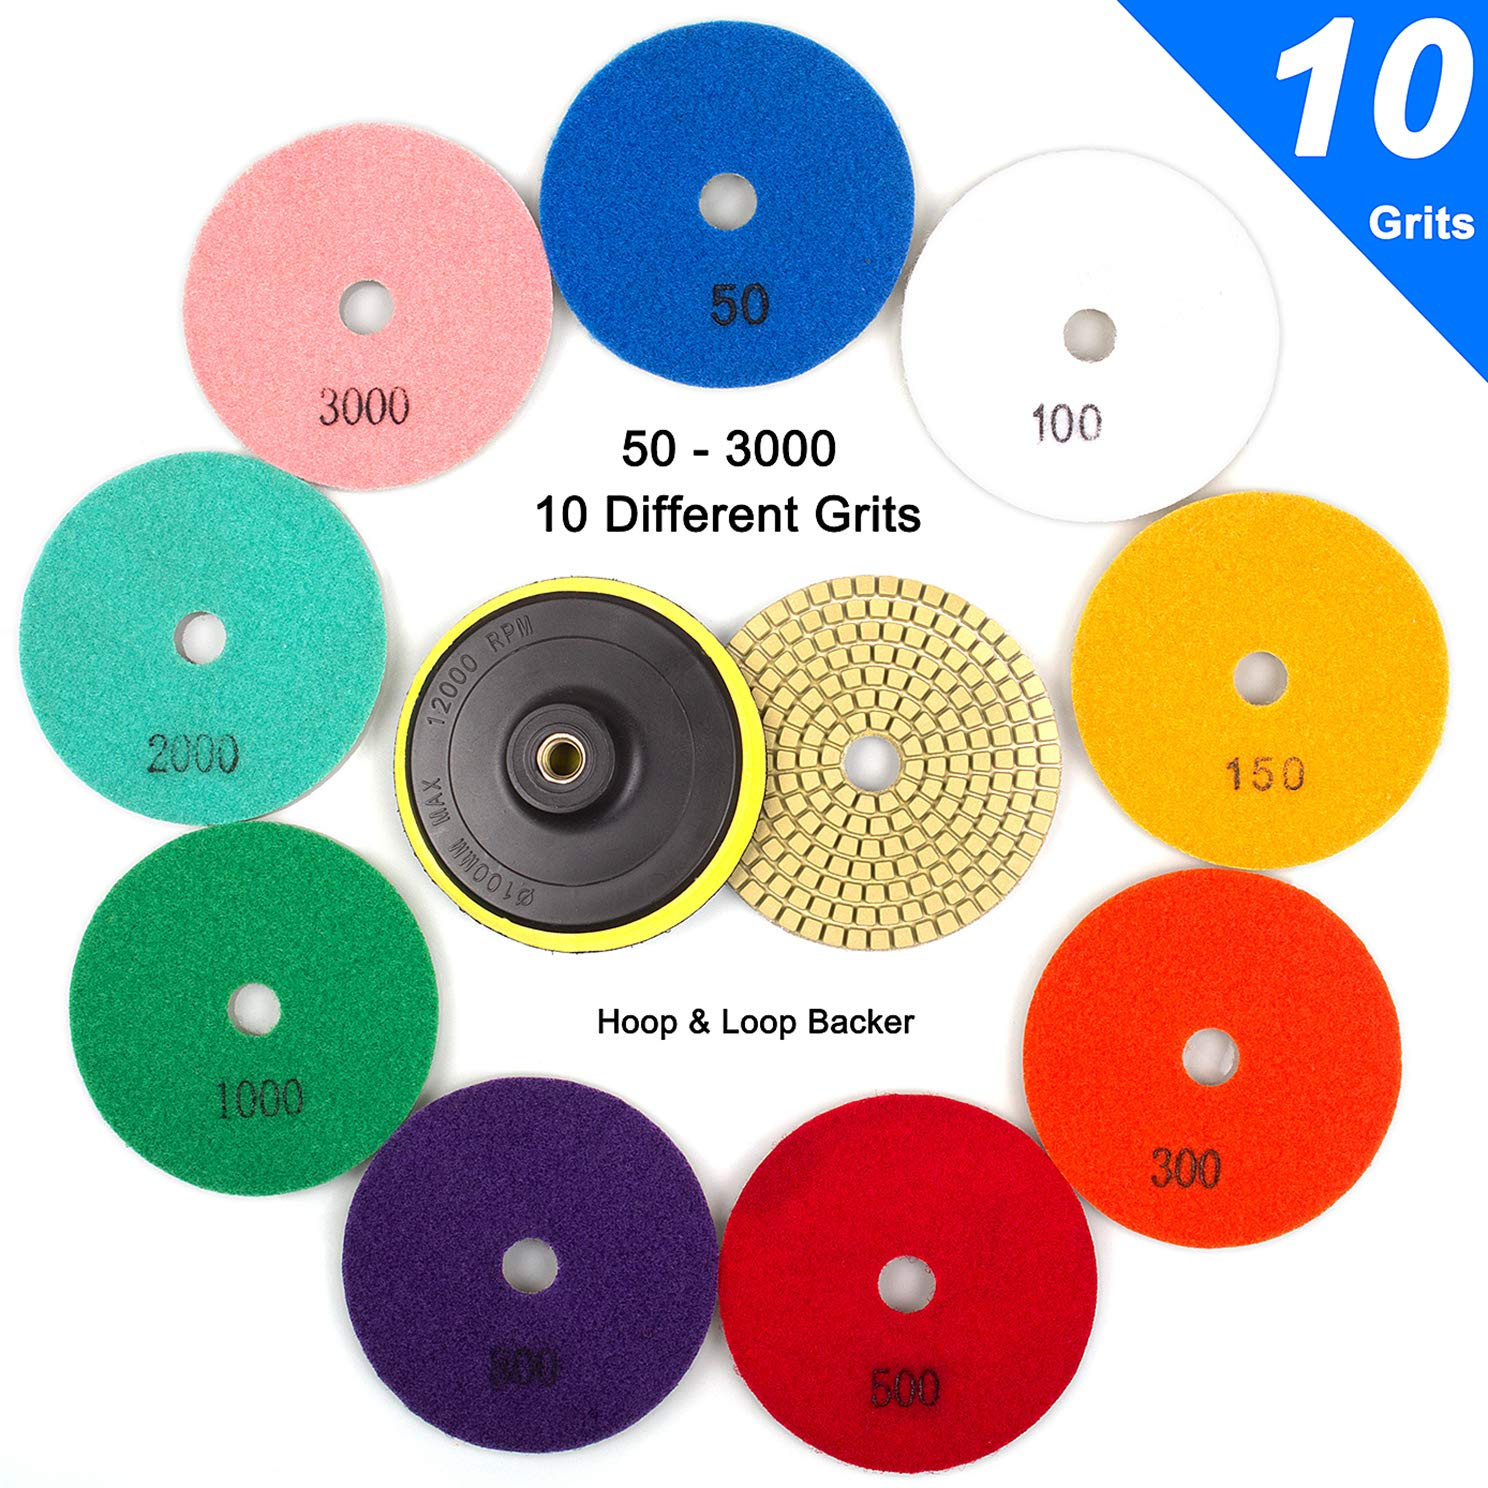 ADVcer Wet Diamond Polishing Pads Set, 4'' 10 Pads 50 to 3000 Grit with Hook and Loop Backing Holder Disc - Ideal Buffing Kit for Granite Concrete Marble Stone Countertop Tile Floor Grinder or Polisher by ADVcer